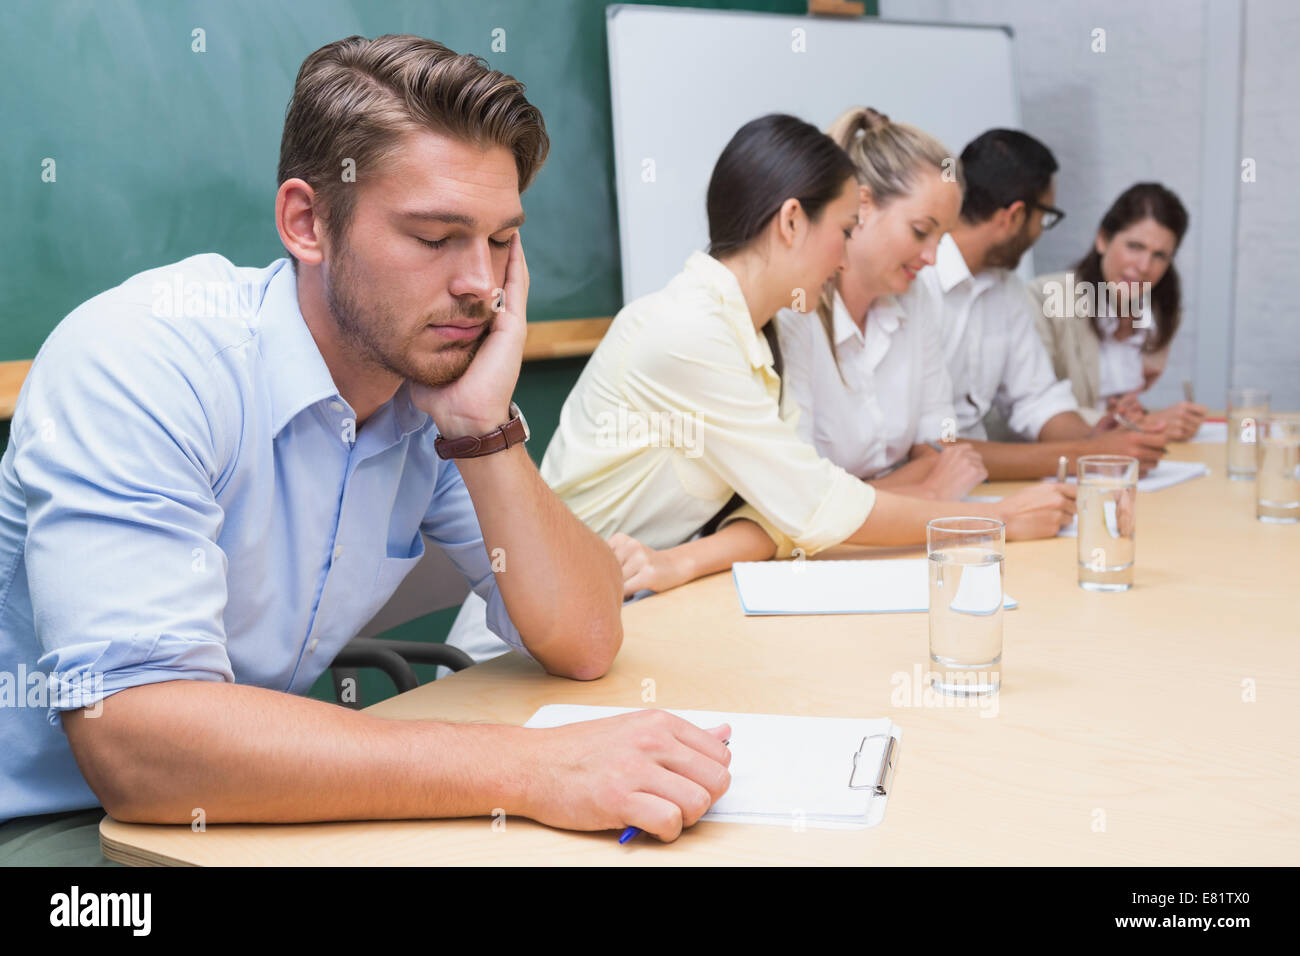 Buisness people working with man sleeping next to them - Stock Image